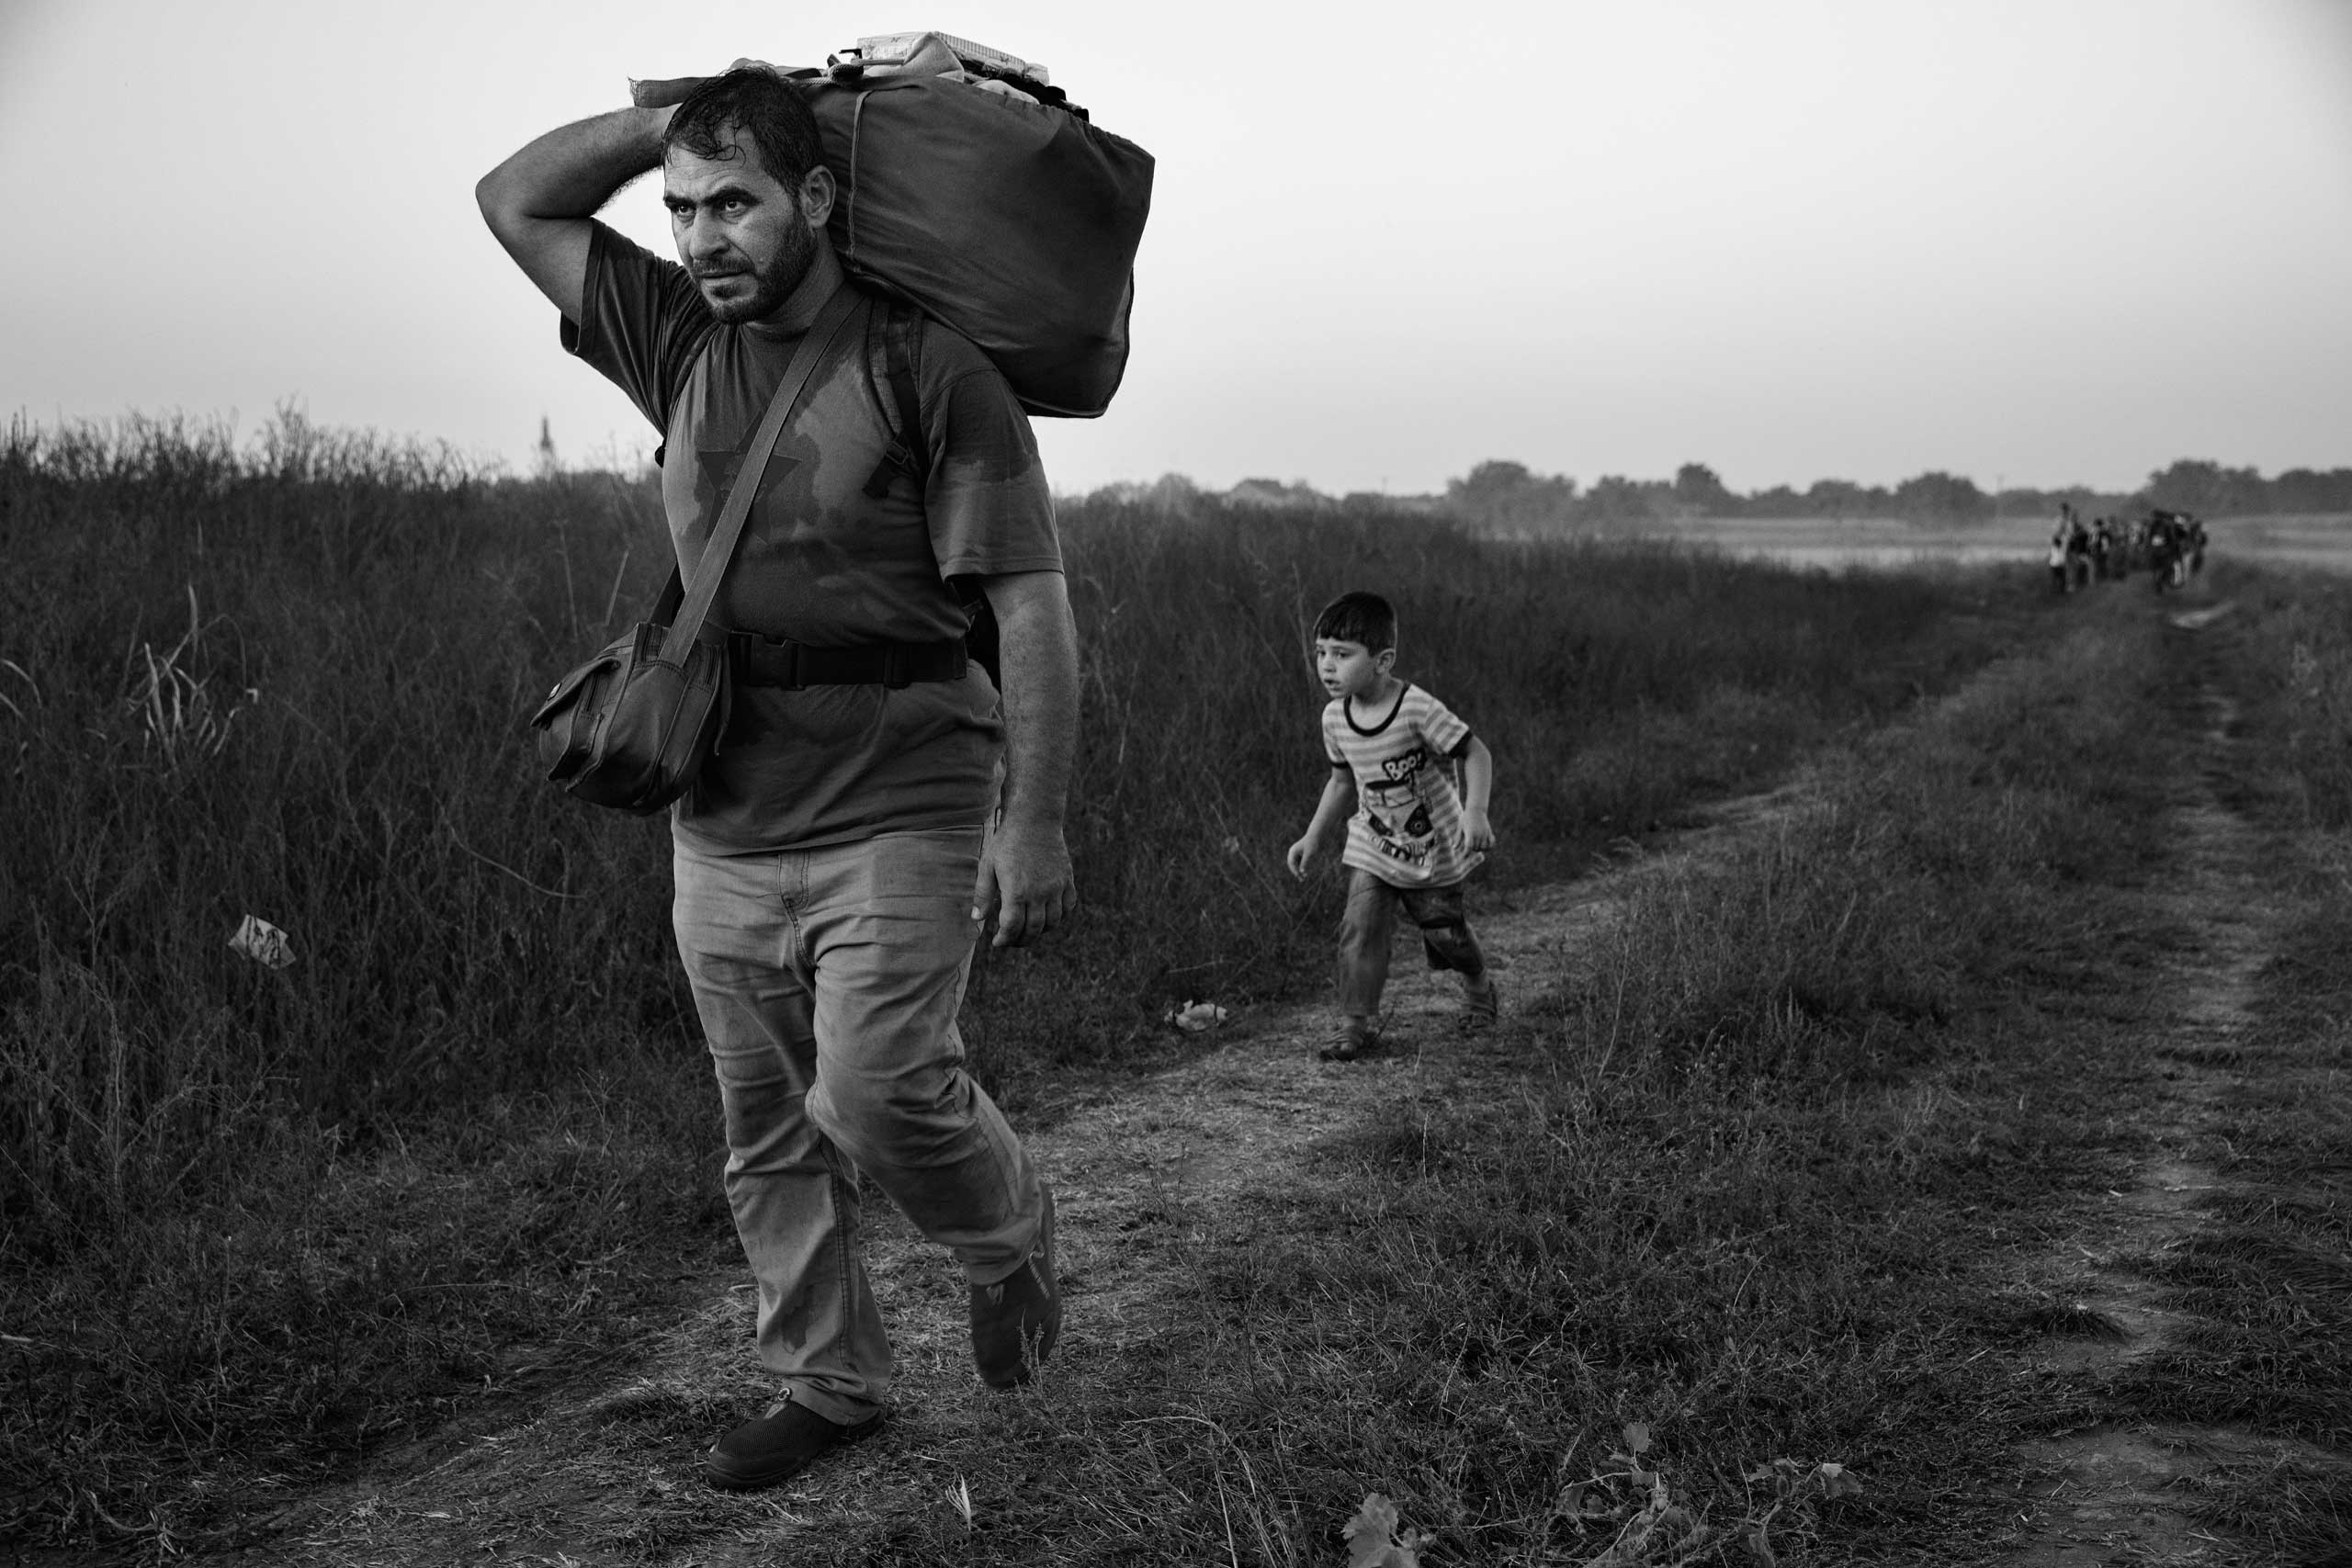 A man walks with his son behind him as they make their way to the train station in Tovarnik, Croatia, on the border with Serbia. In the Balkans, many migrants began traveling by foot, echoing more ancient journeys, Sept. 17, 2015.